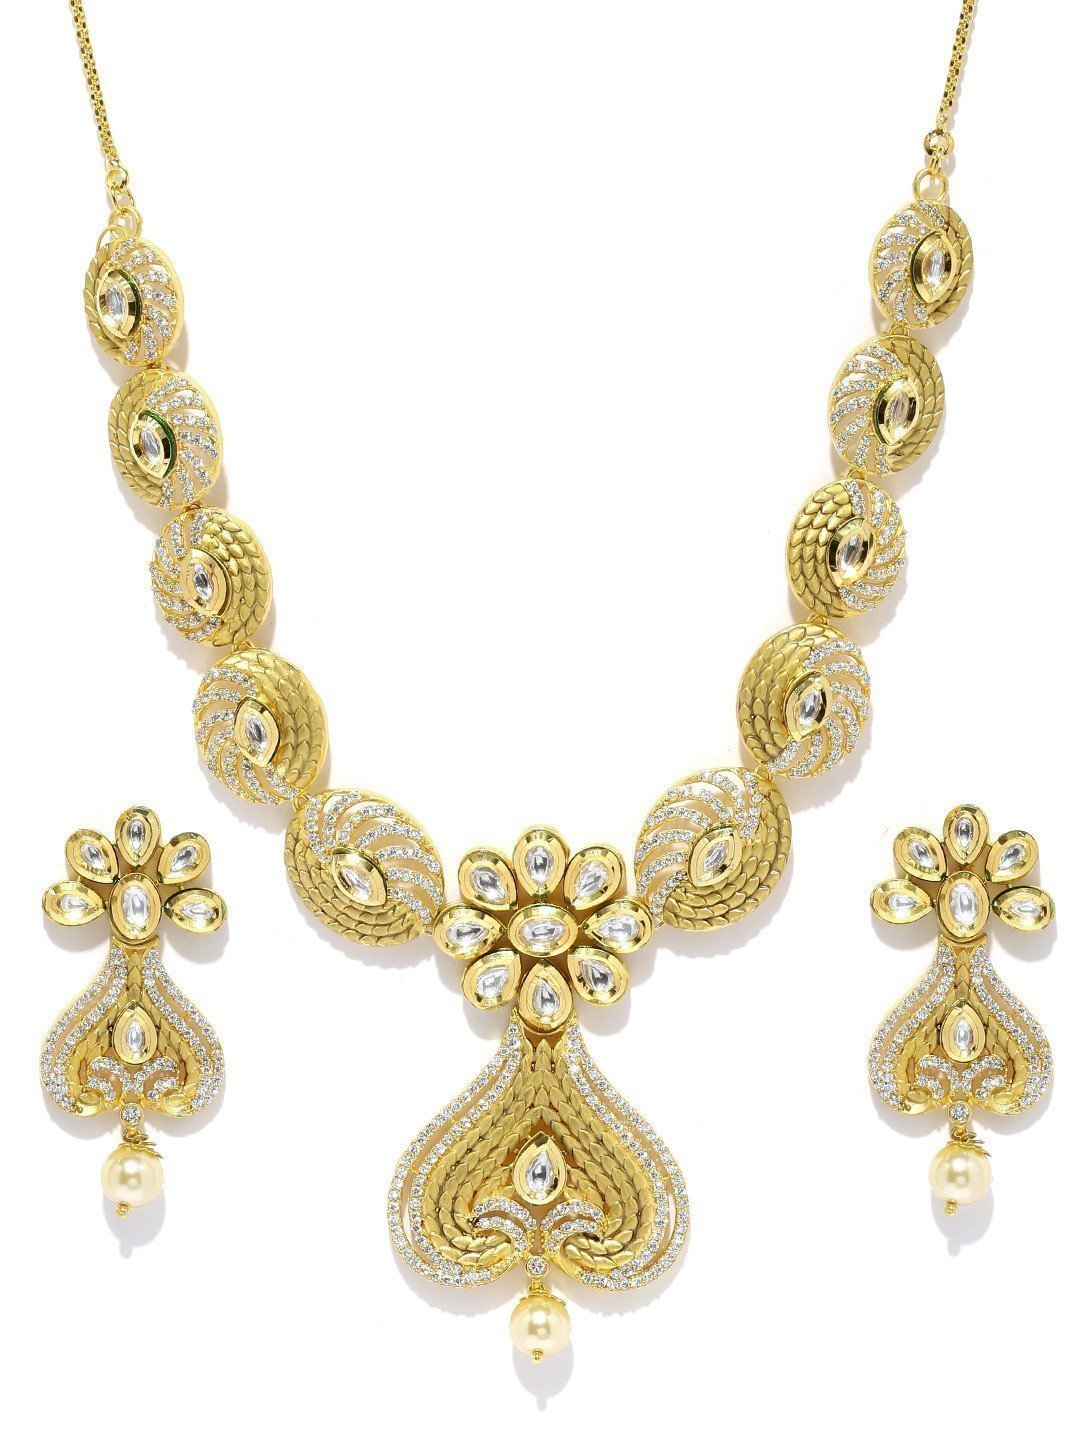 Fashion-Forward Kundan & Cubic Zirconia With Pearl Drop Necklace Set - Zpfk5824